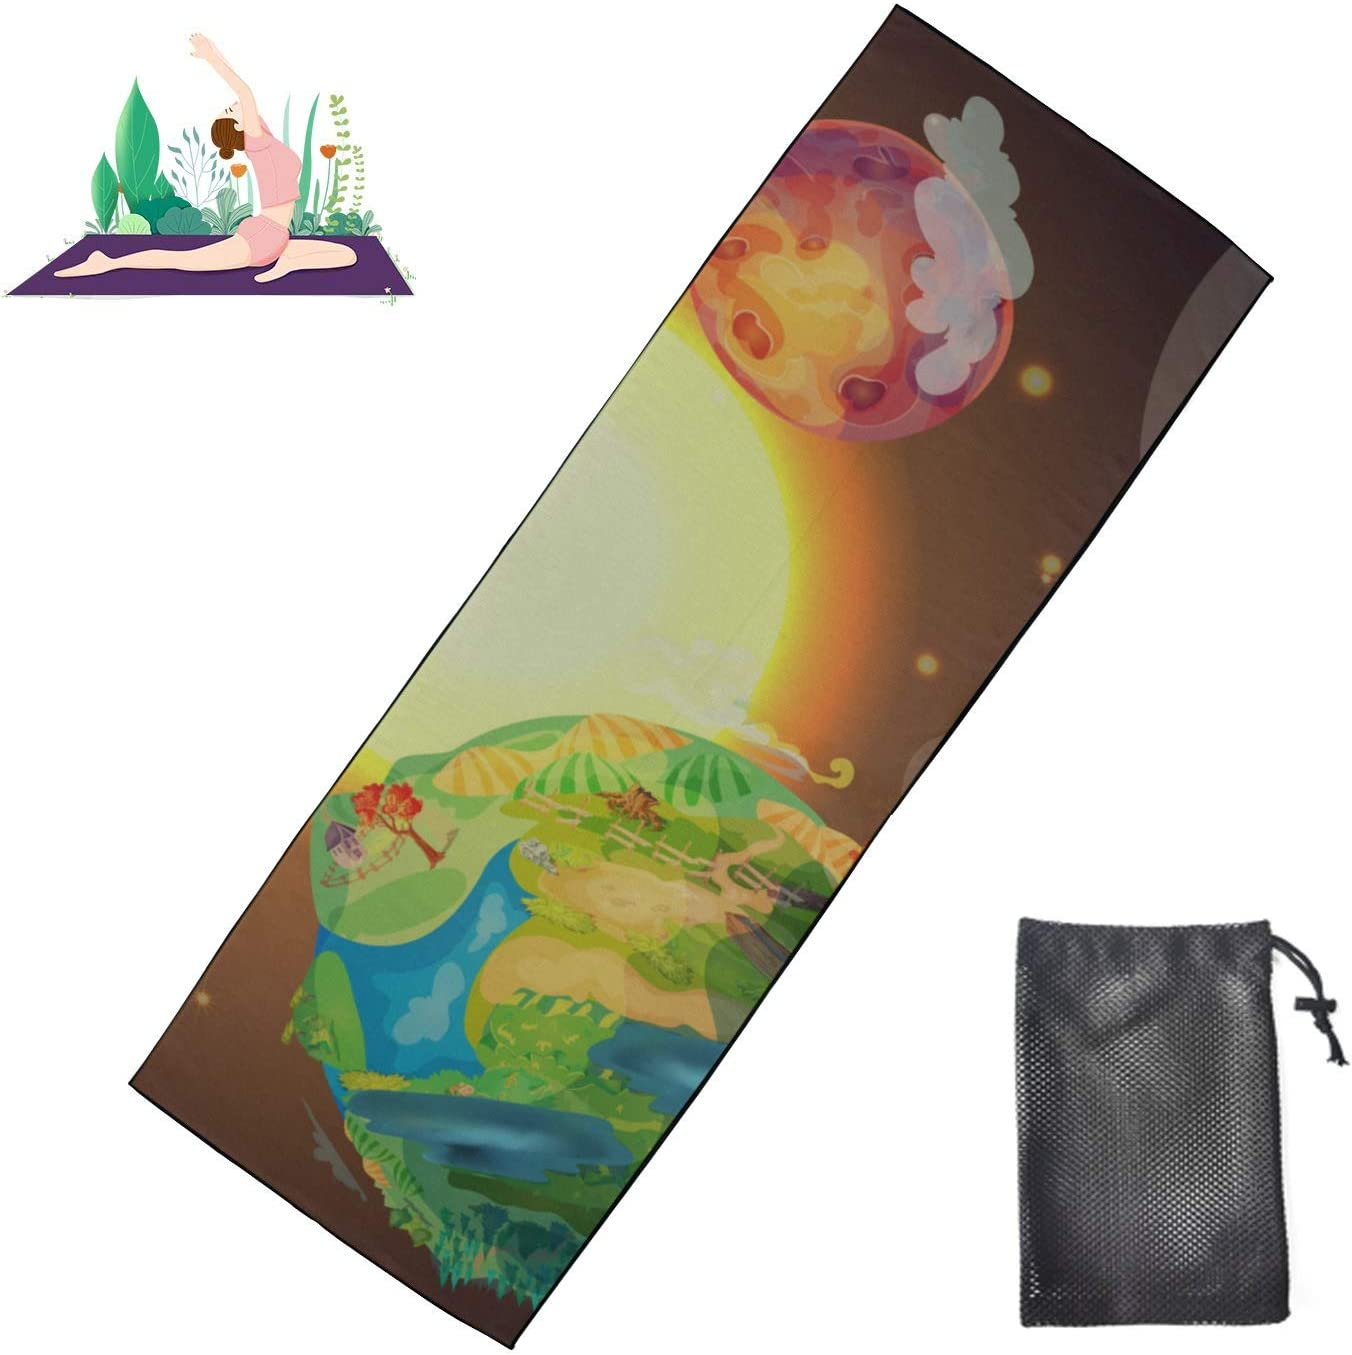 HJSHG Yoga Manufacturer direct delivery Mat 25% OFF Towel Cartoon Earth Vect Template Planet Colorful